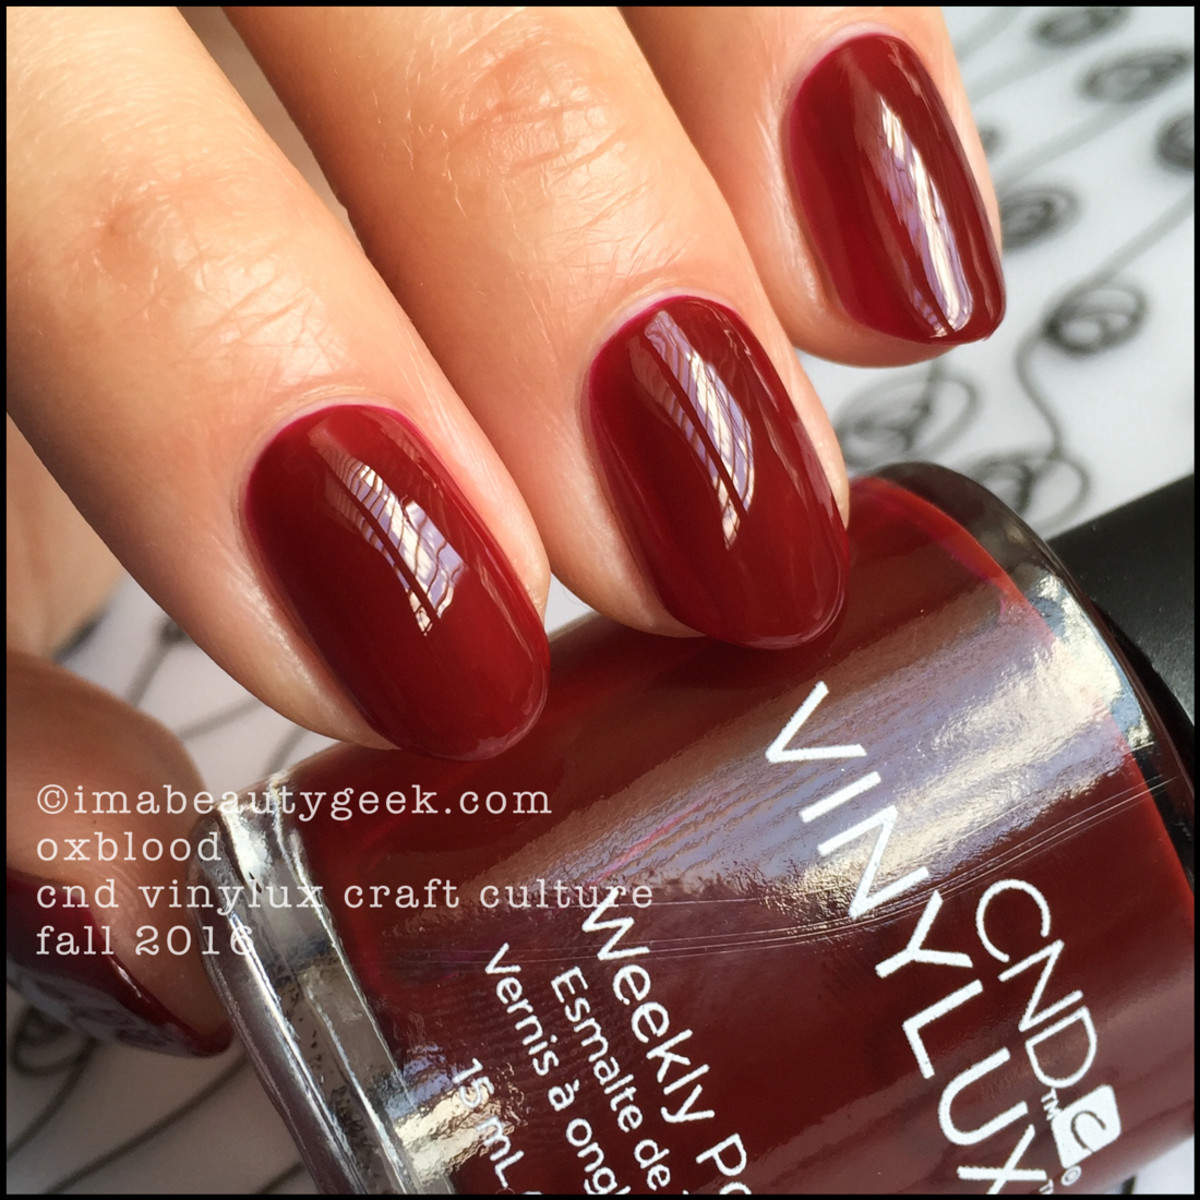 CND Vinylux Oxblood_CND Vinylux Craft Culture Collection Swatches Fall 2016